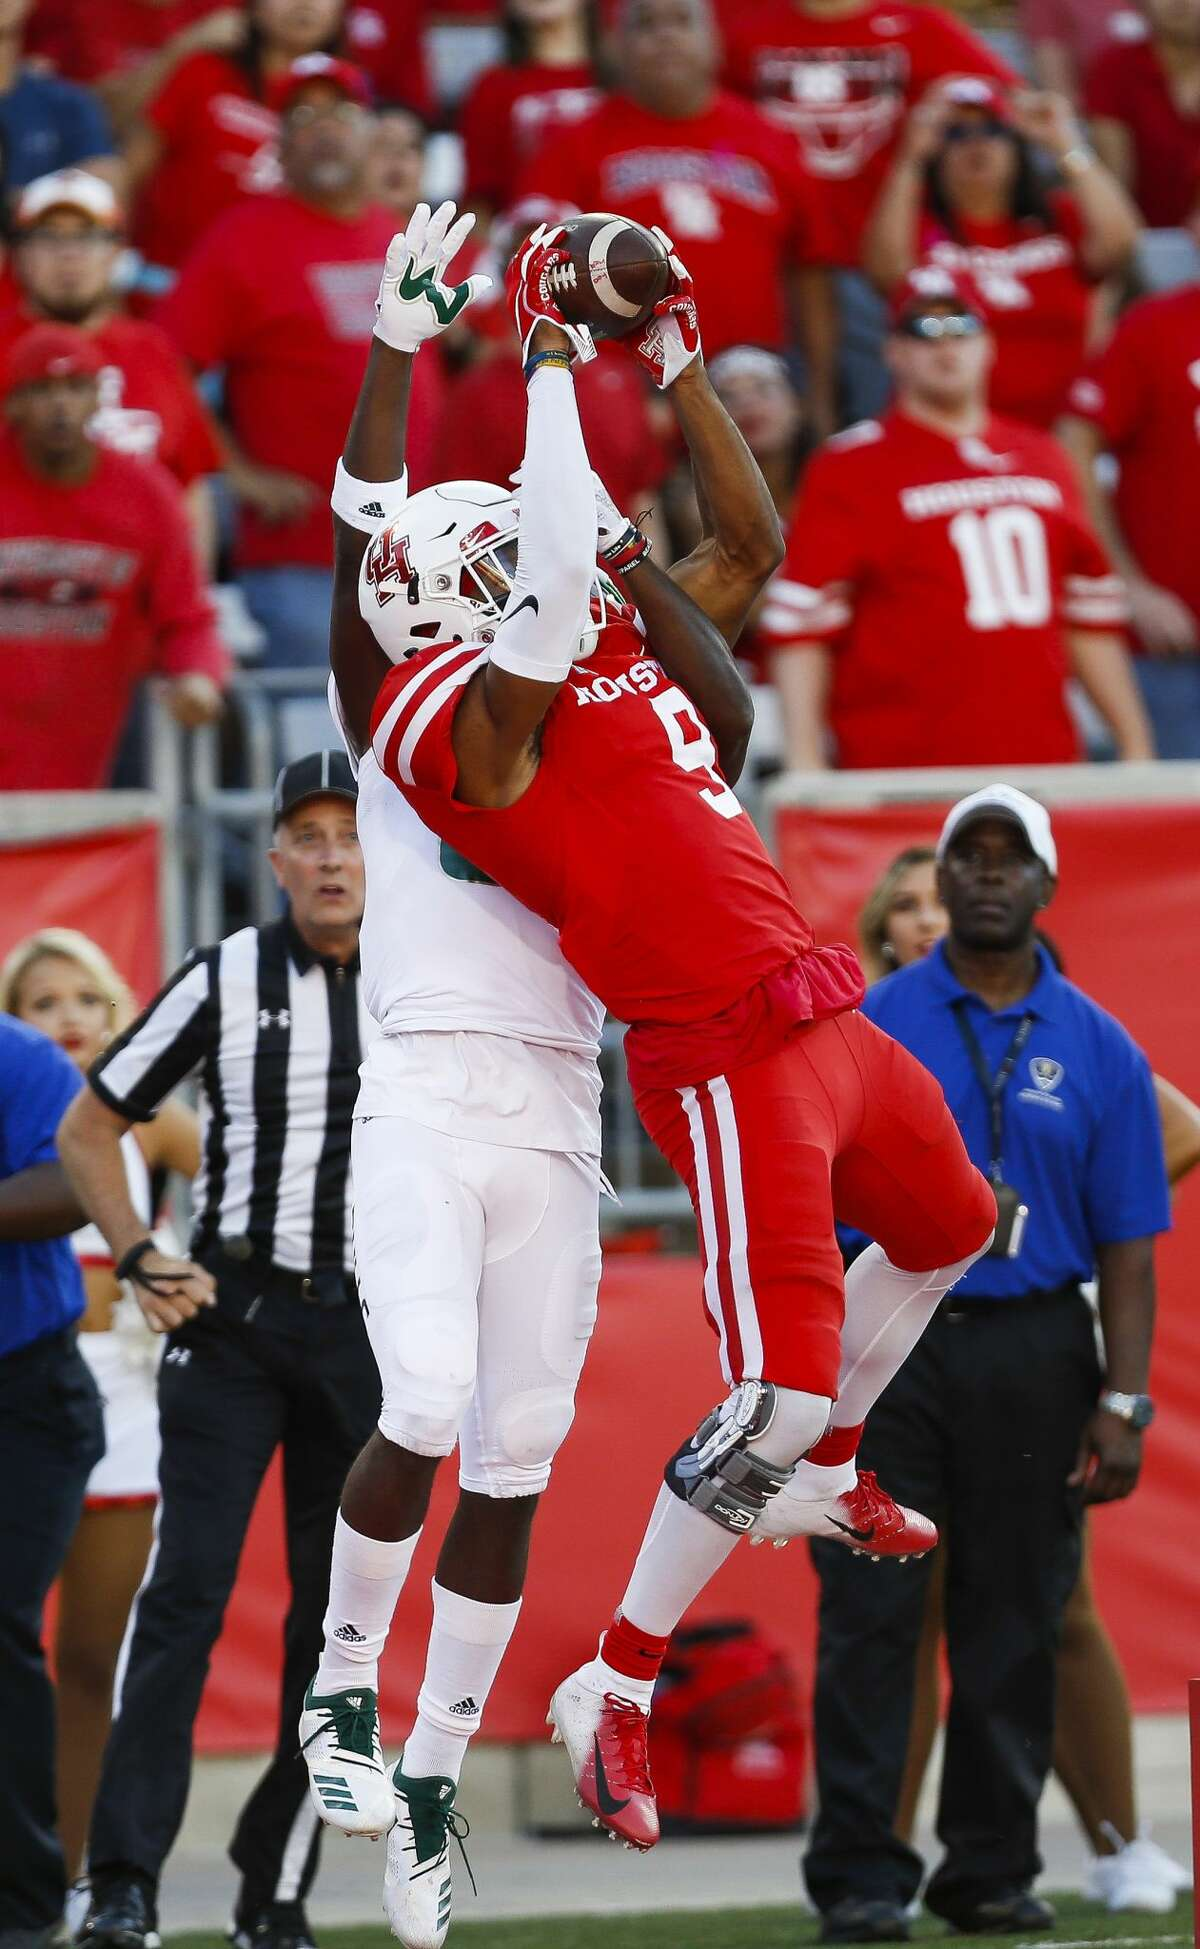 Houston Cougars wide receiver Courtney Lark (9) catches an interception in the end zone in front of South Florida Bulls wide receiver Zion Roland (82) during the second half as the Houston Cougars beat the South Florida Bulls 57-36 at TDECU Stadium Saturday, Oct. 27, 2018, in Houston.